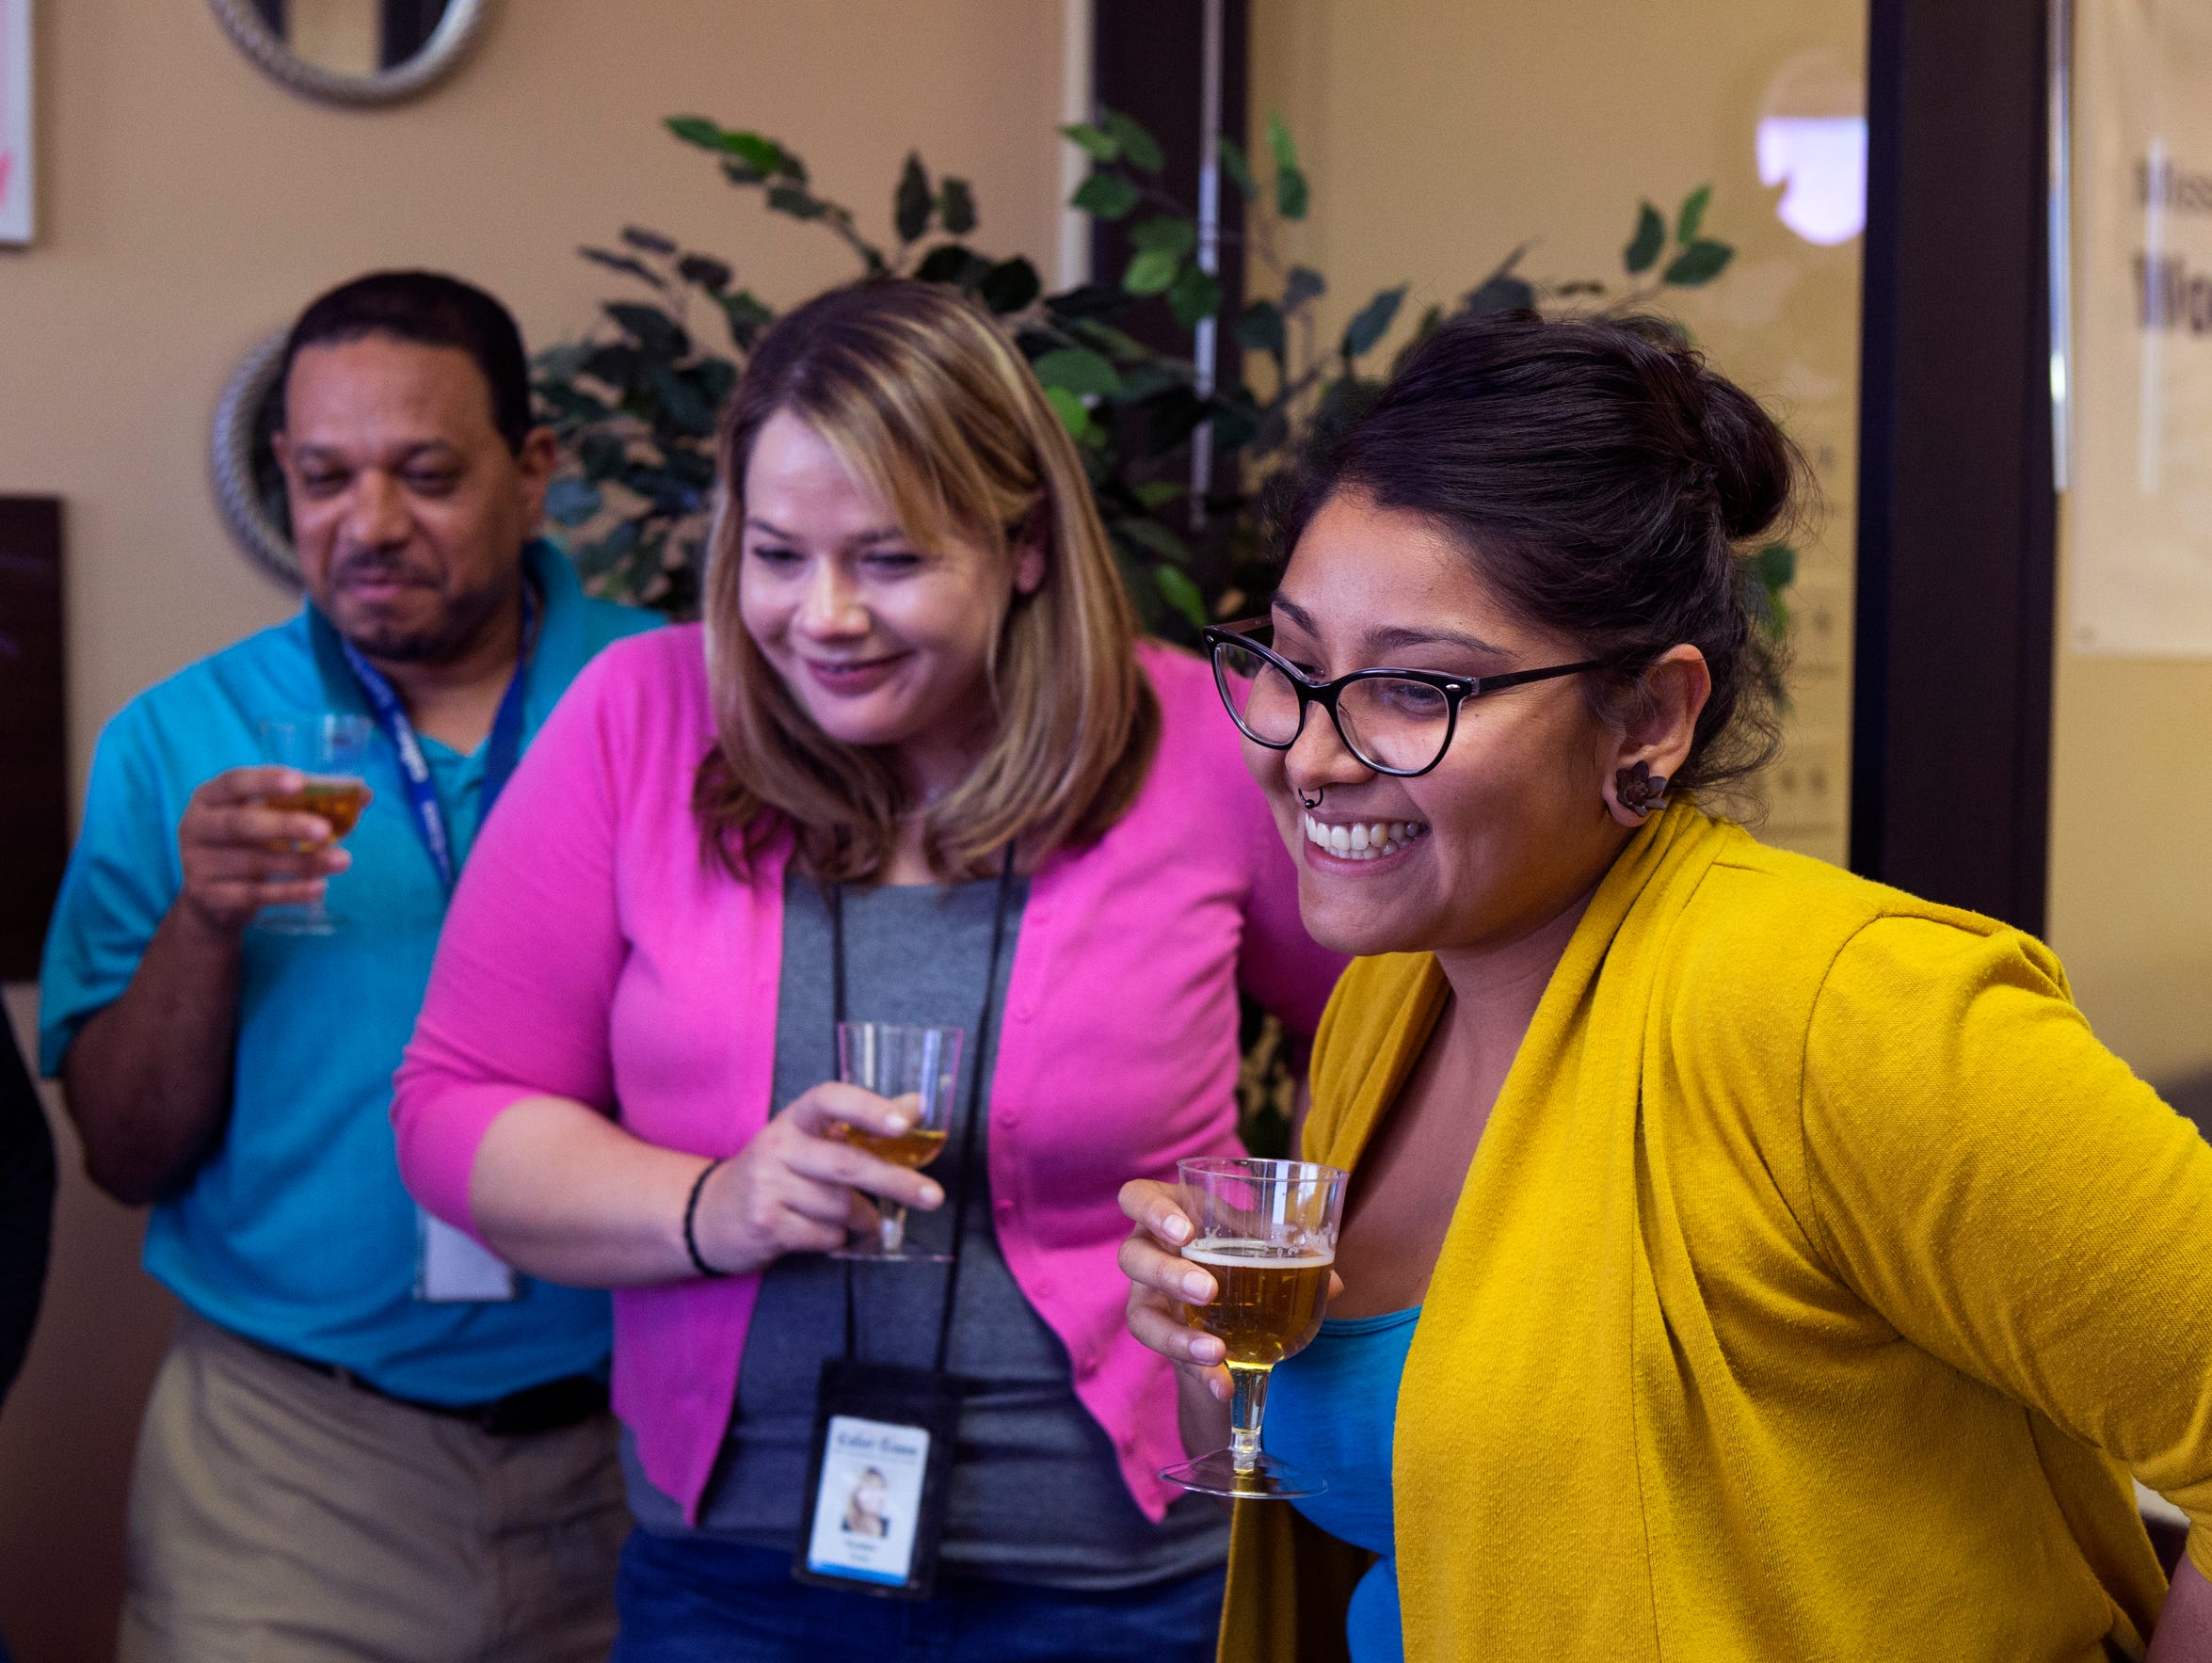 Caller-Times Lead Coach Chris Ramirez (from left), and reporters Kirsten Crow and Beatriz Alvarado prepare for a celebratory toast during a video conference call with The Arizona Republic and other USA Today Network newspapers that participated in The Wall series. The series won a Pulitzer Prize for the Republic and the network on Monday, April 16, 2018. The Caller-Times staff contributed reporting, research, photos and video and ran the series in its entirety.